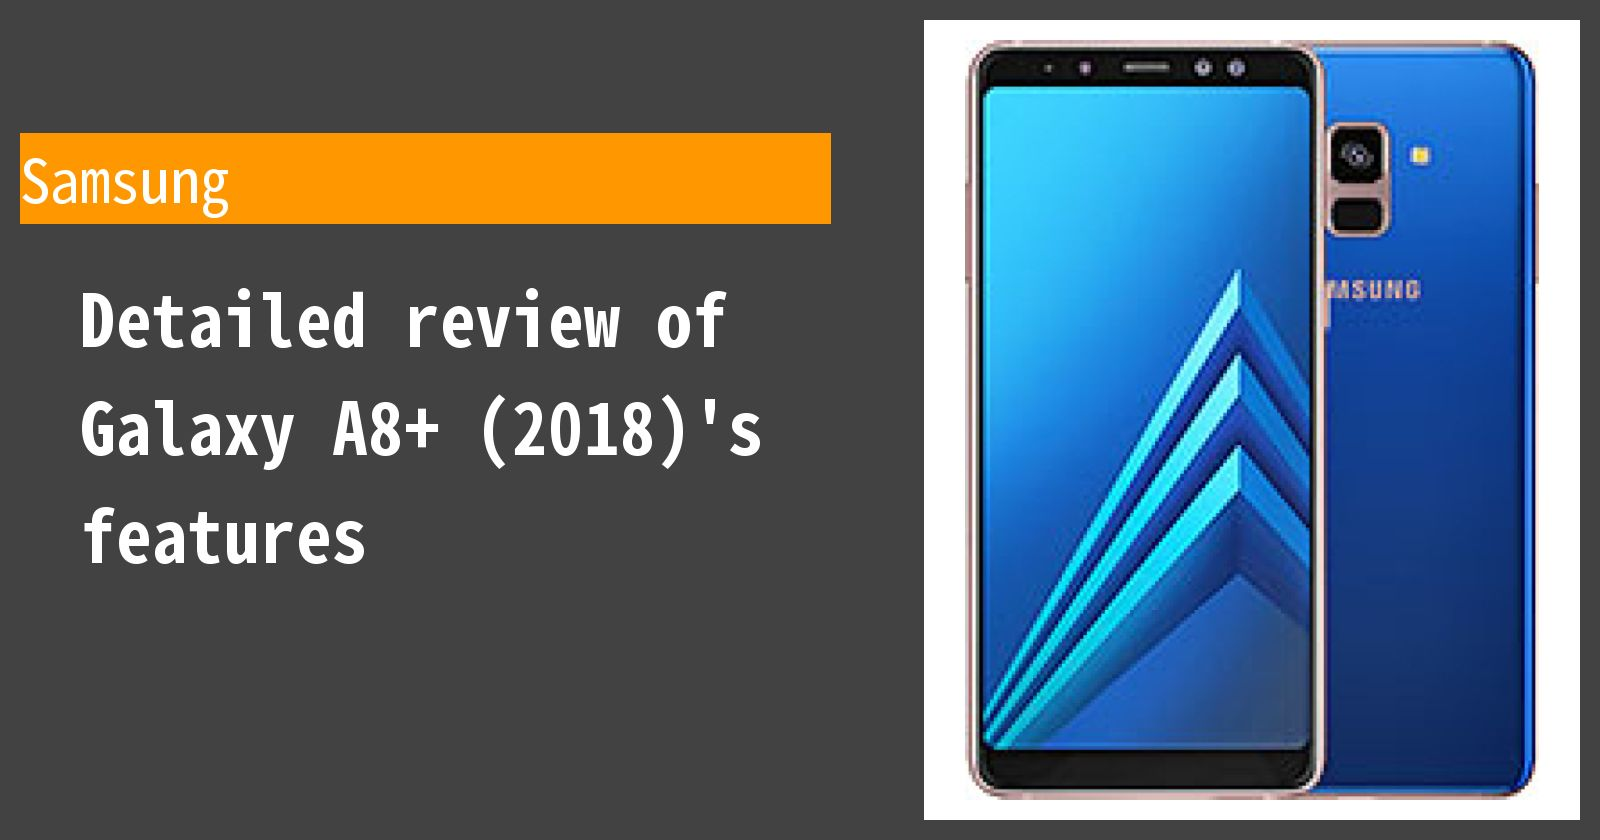 Detailed review of Galaxy A8+ (2018)'s features